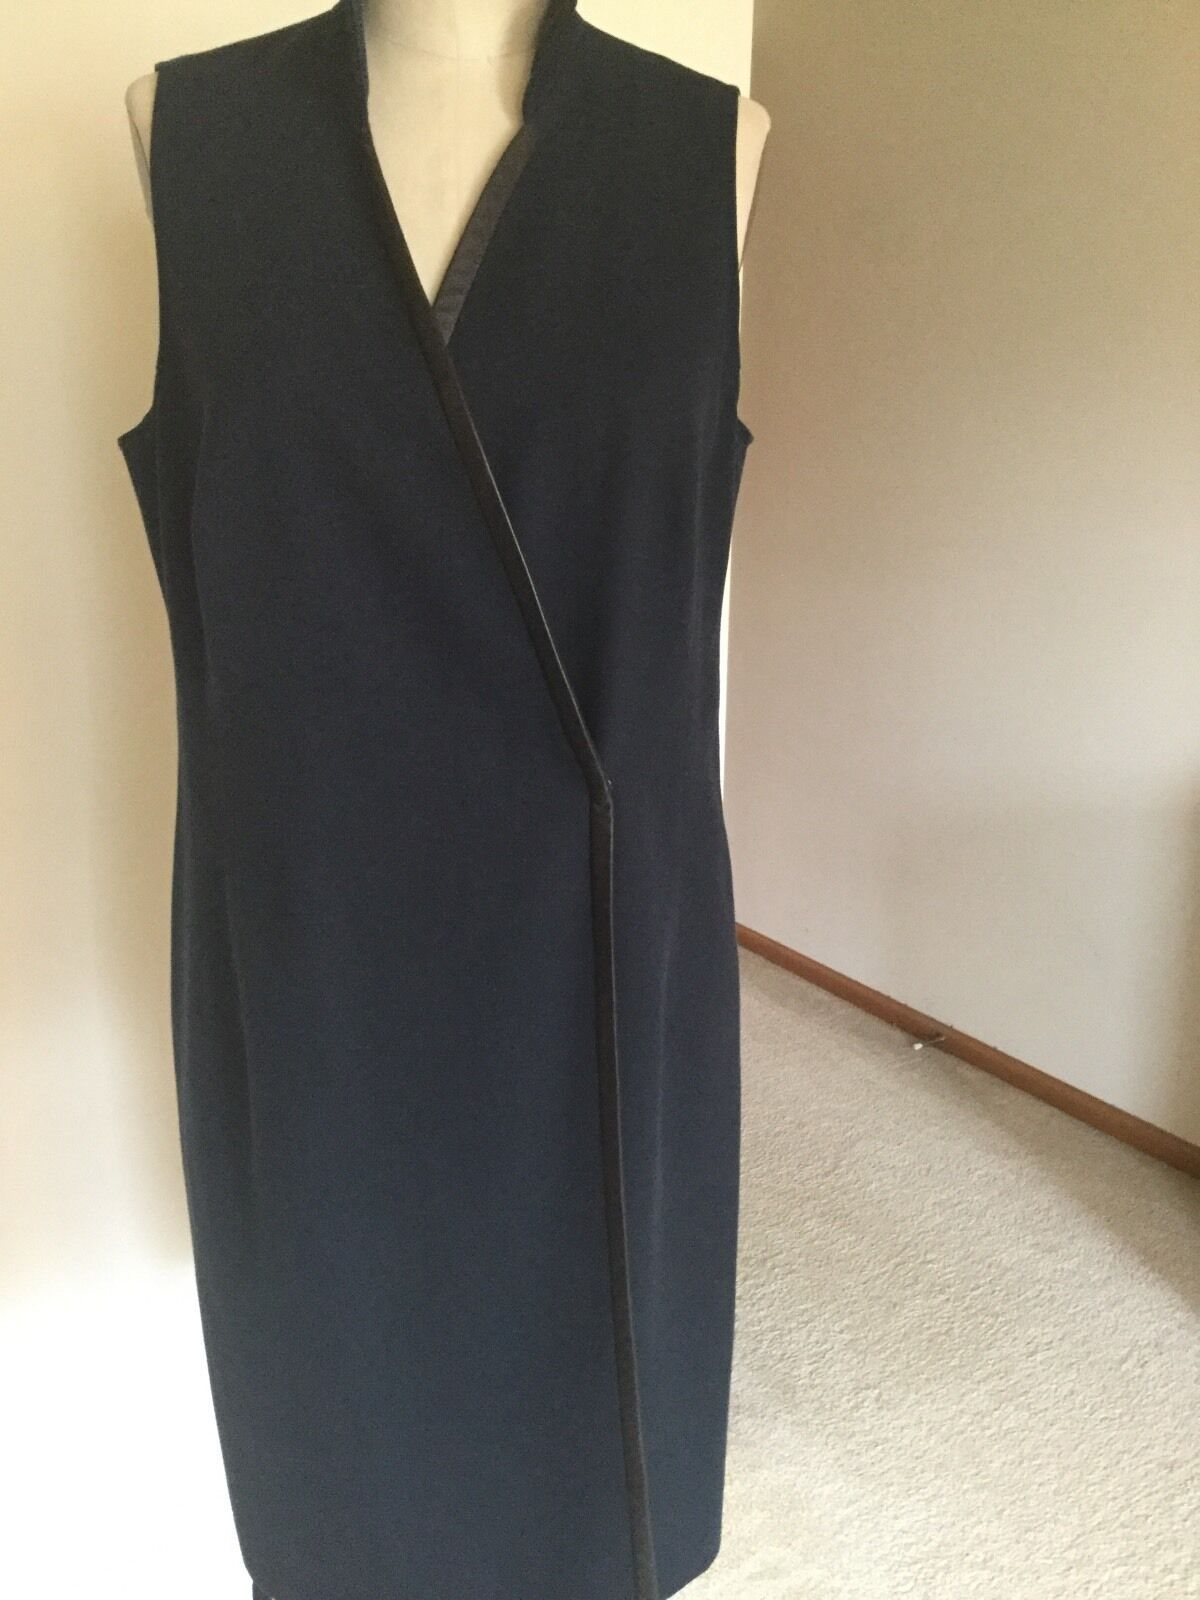 Primary image for Dress,US Size 10,Black,Polyester,Sleeveless,,Armani Collezioni,Italy,